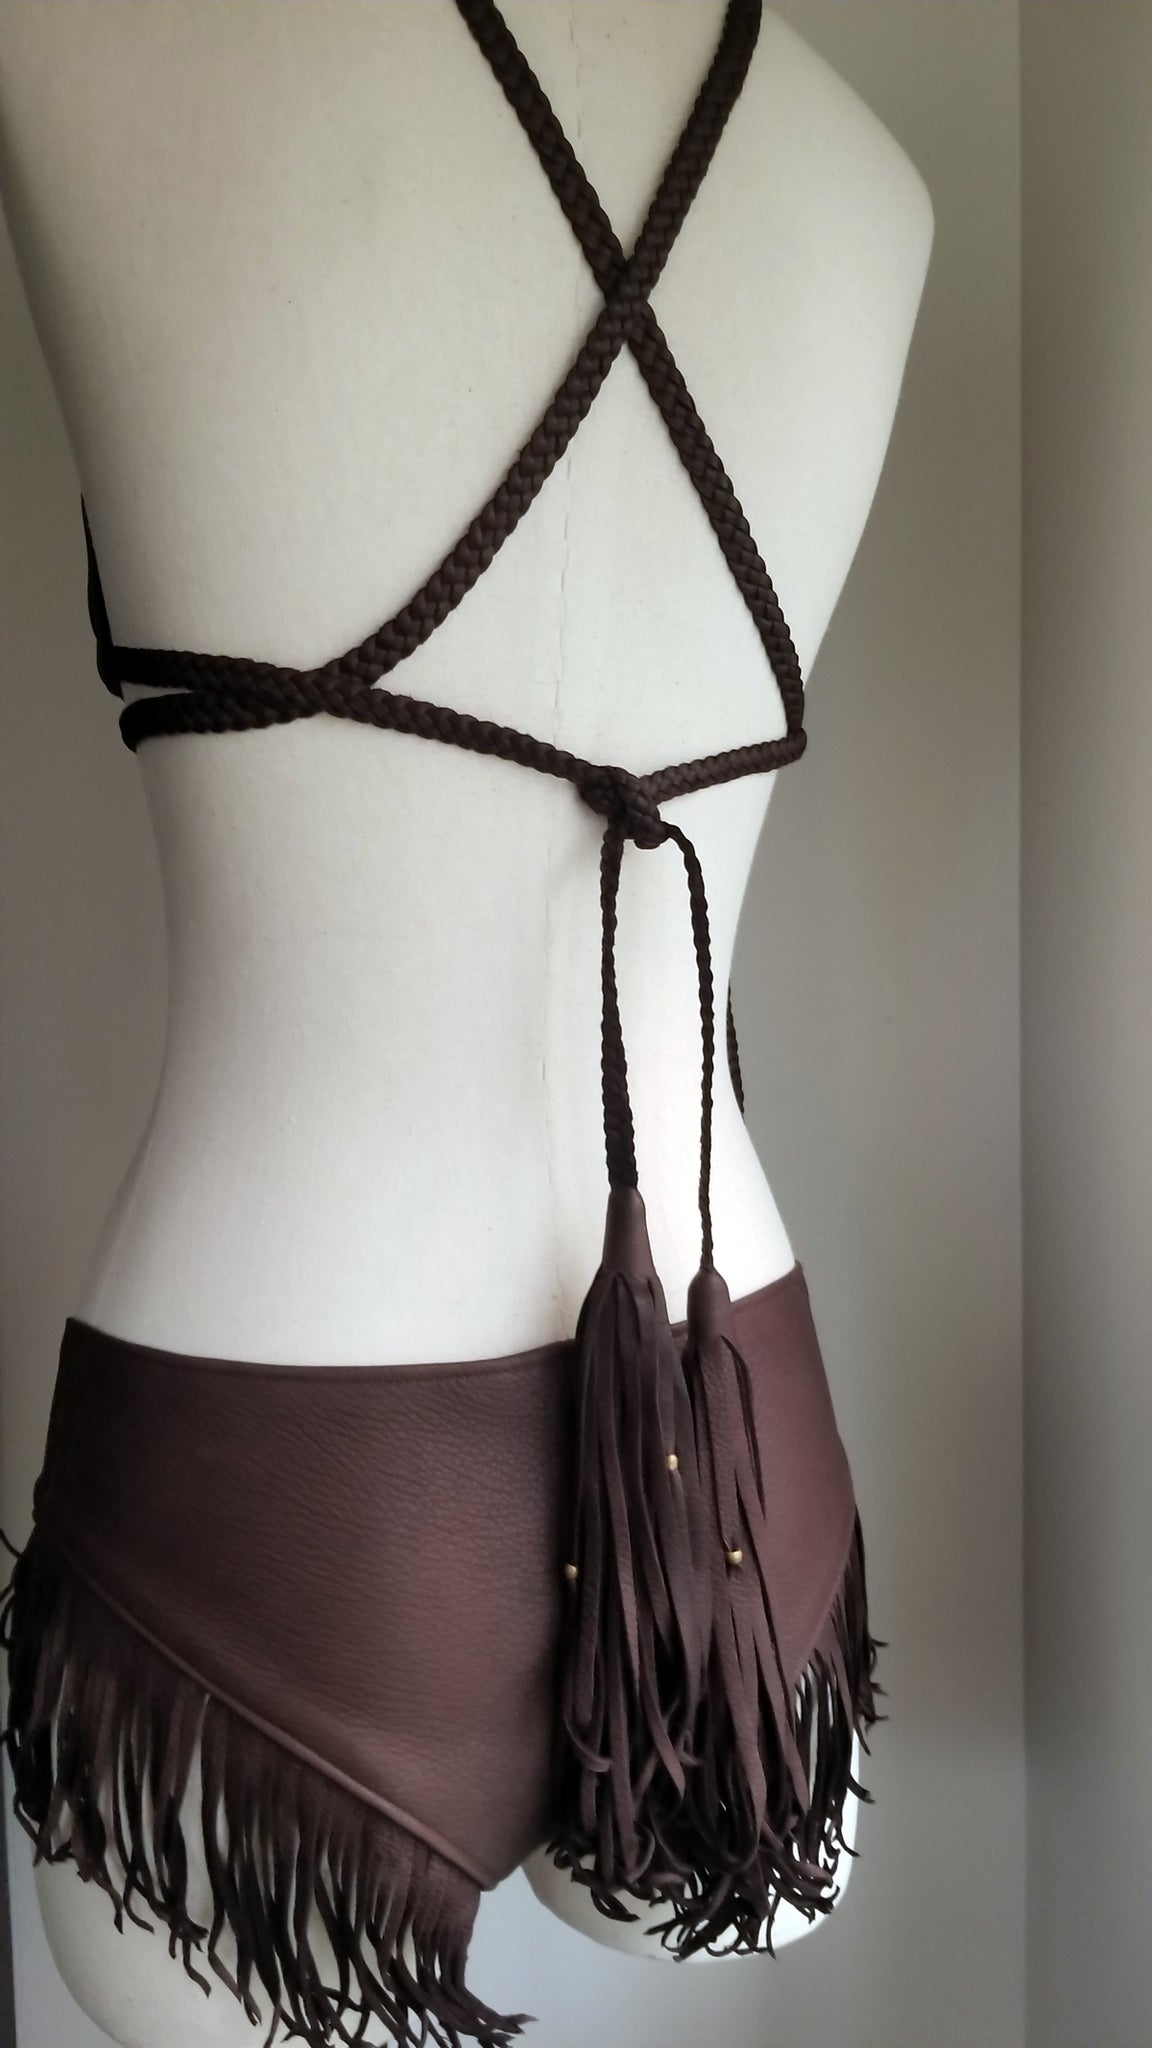 leather bikini set, deerskin leather boy booty shorts bottoms, triangle leather top with braided leather ties and straps, tassels and african beads, chocolate brown on mannequin